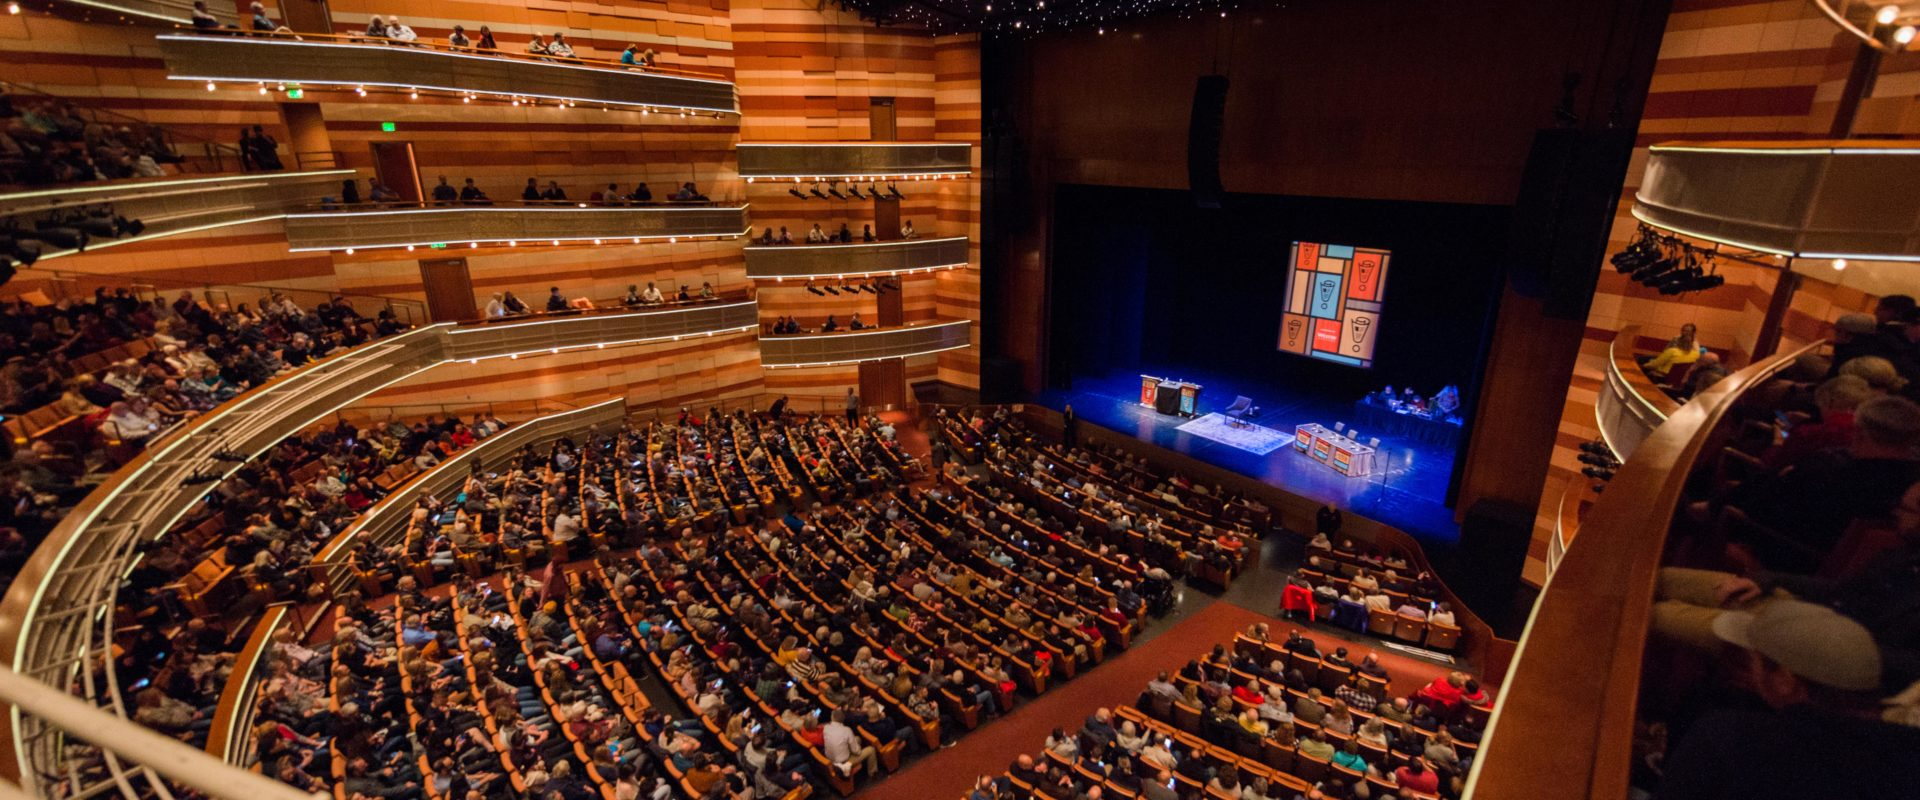 NPR's Wait Wait... Don't Tell Me! celebrates its 1000th live show for a sold out audience in Salt Lake City, UT